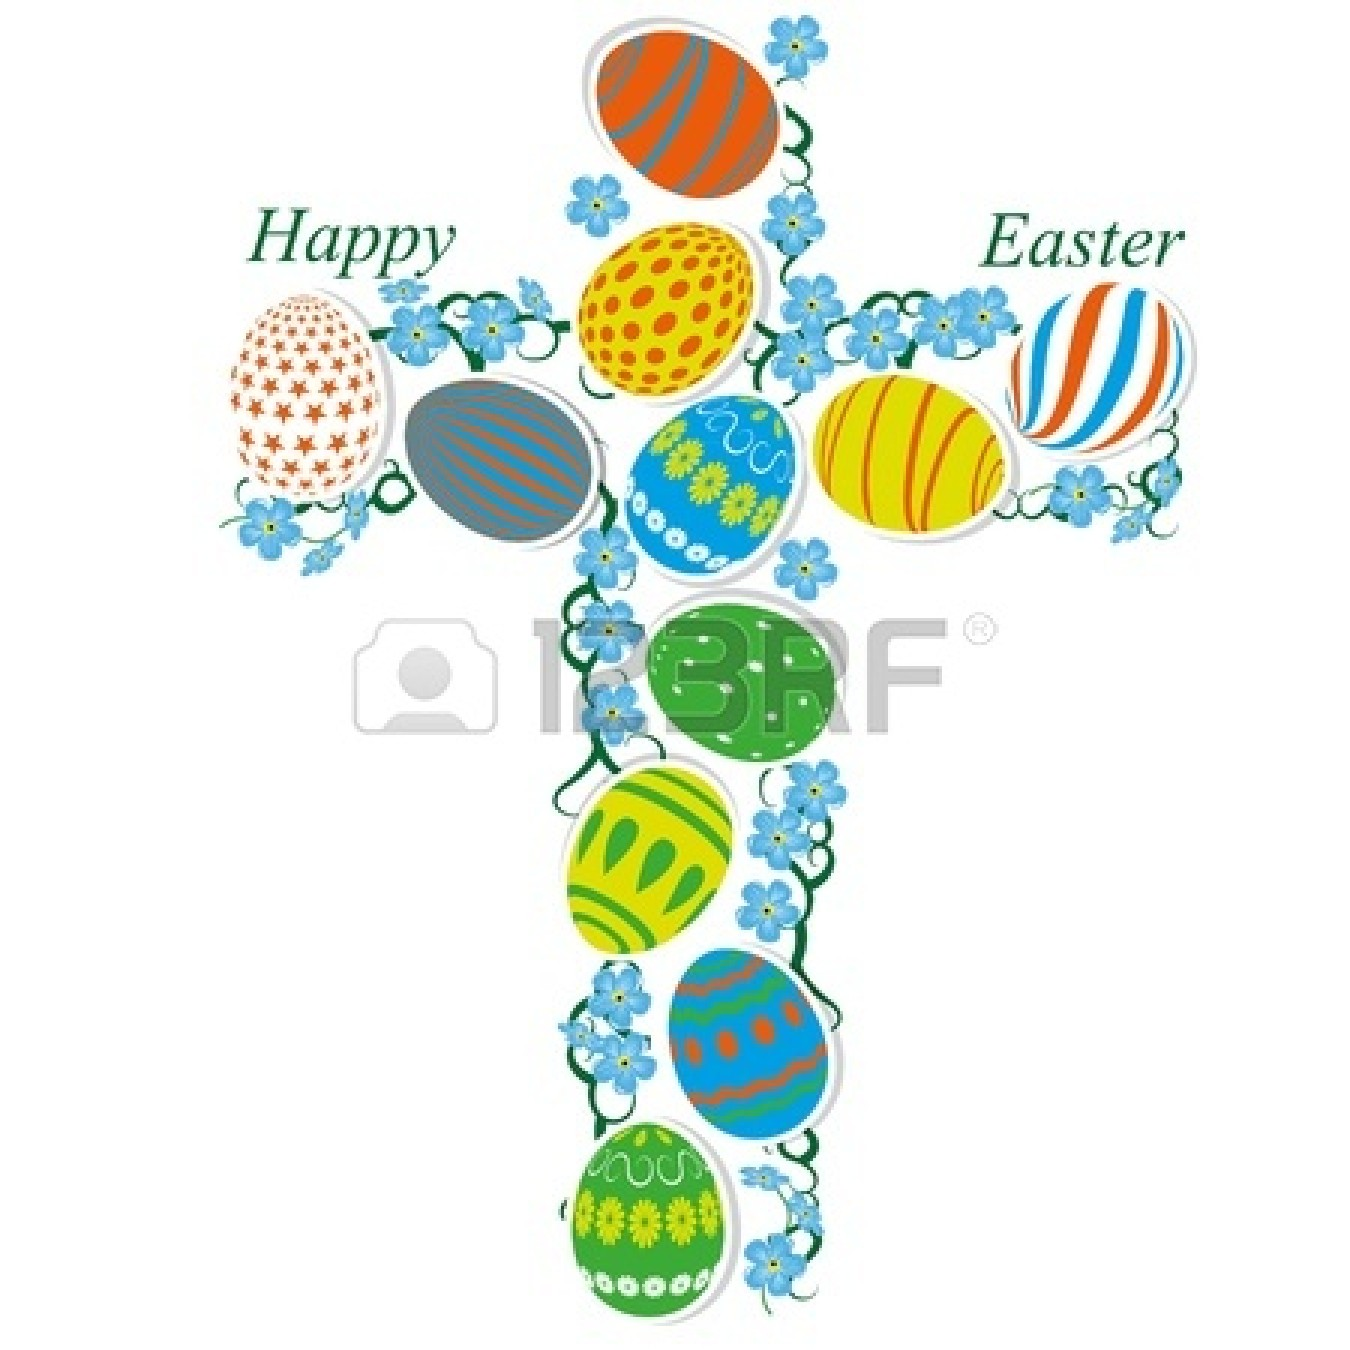 Catholic clipart easter clip art free stock Free Catholic Easter Cliparts, Download Free Clip Art, Free Clip Art ... clip art free stock